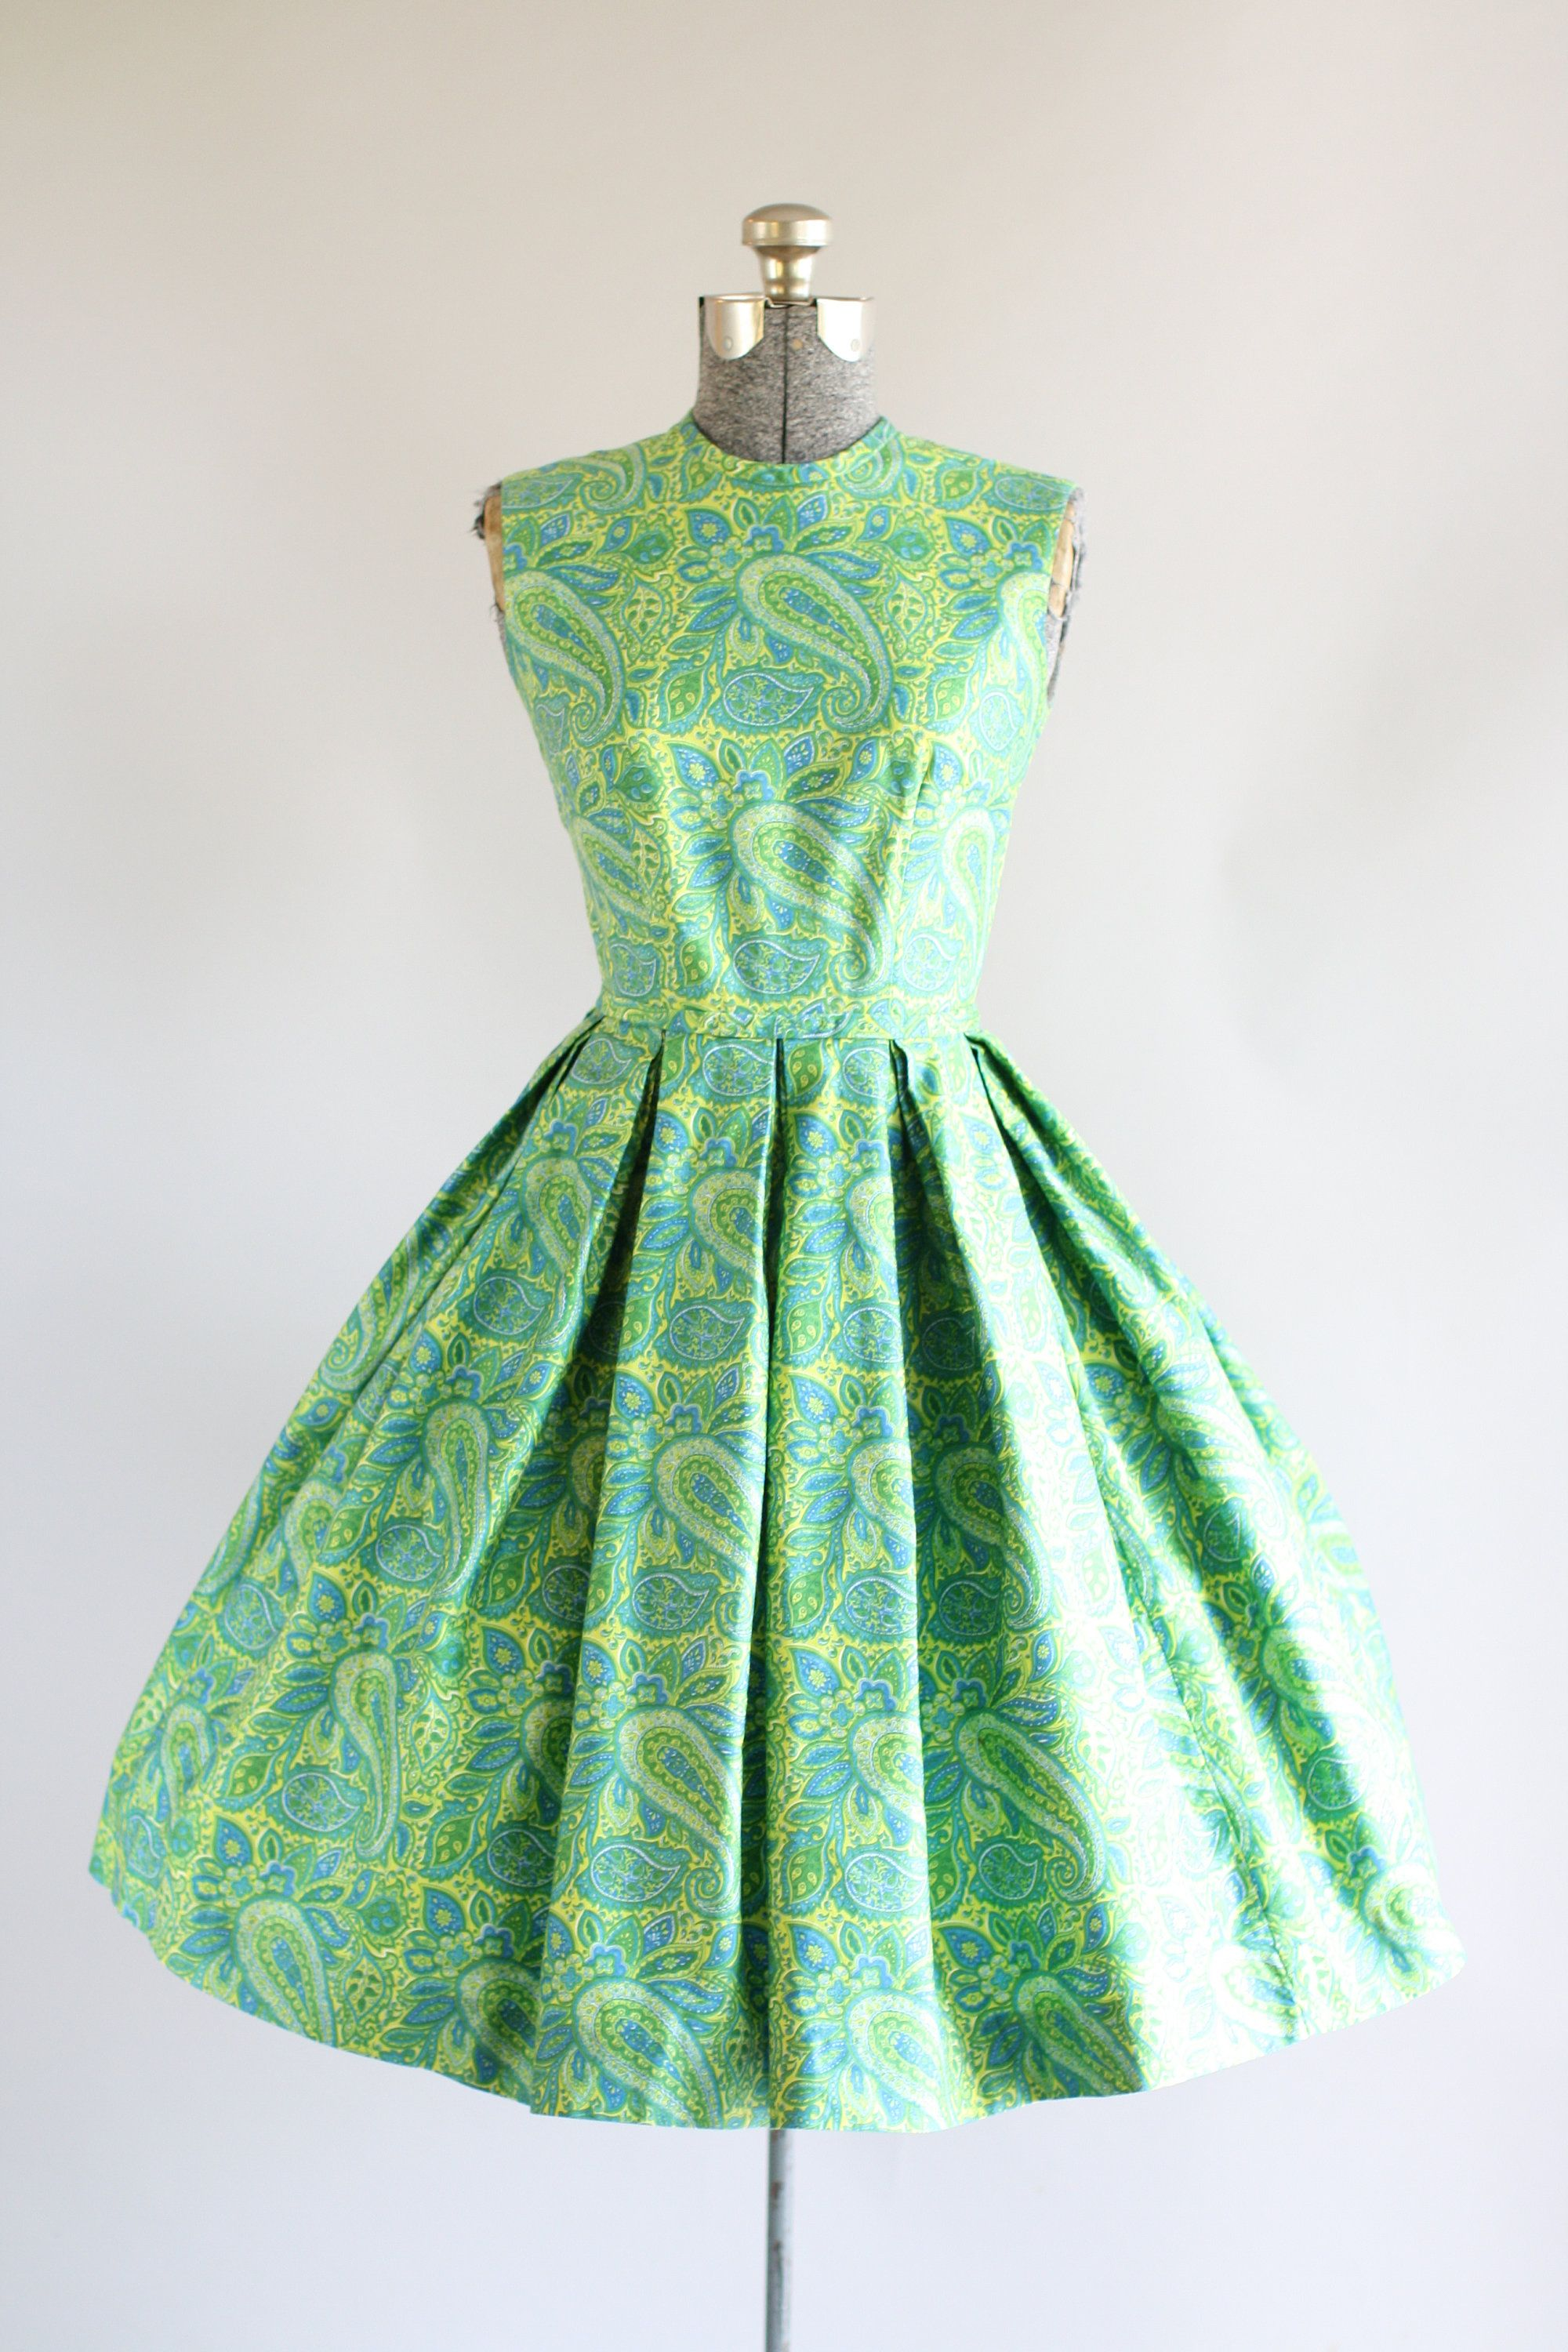 Green dress ideas  Vintage s Dress  s Cotton Dress  Green and Blue Paisley